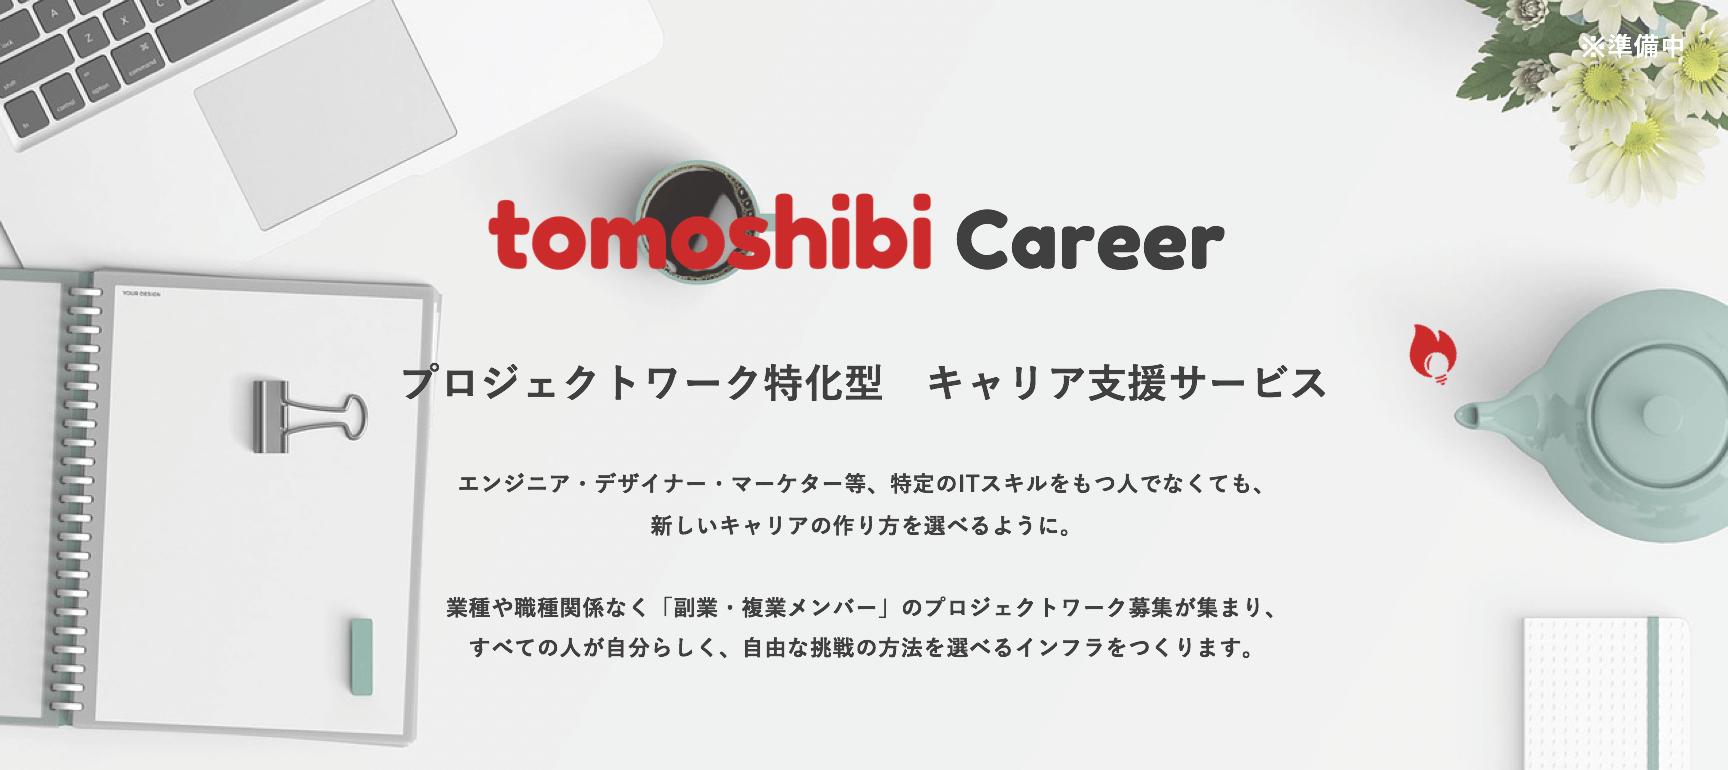 tomoshibi Career